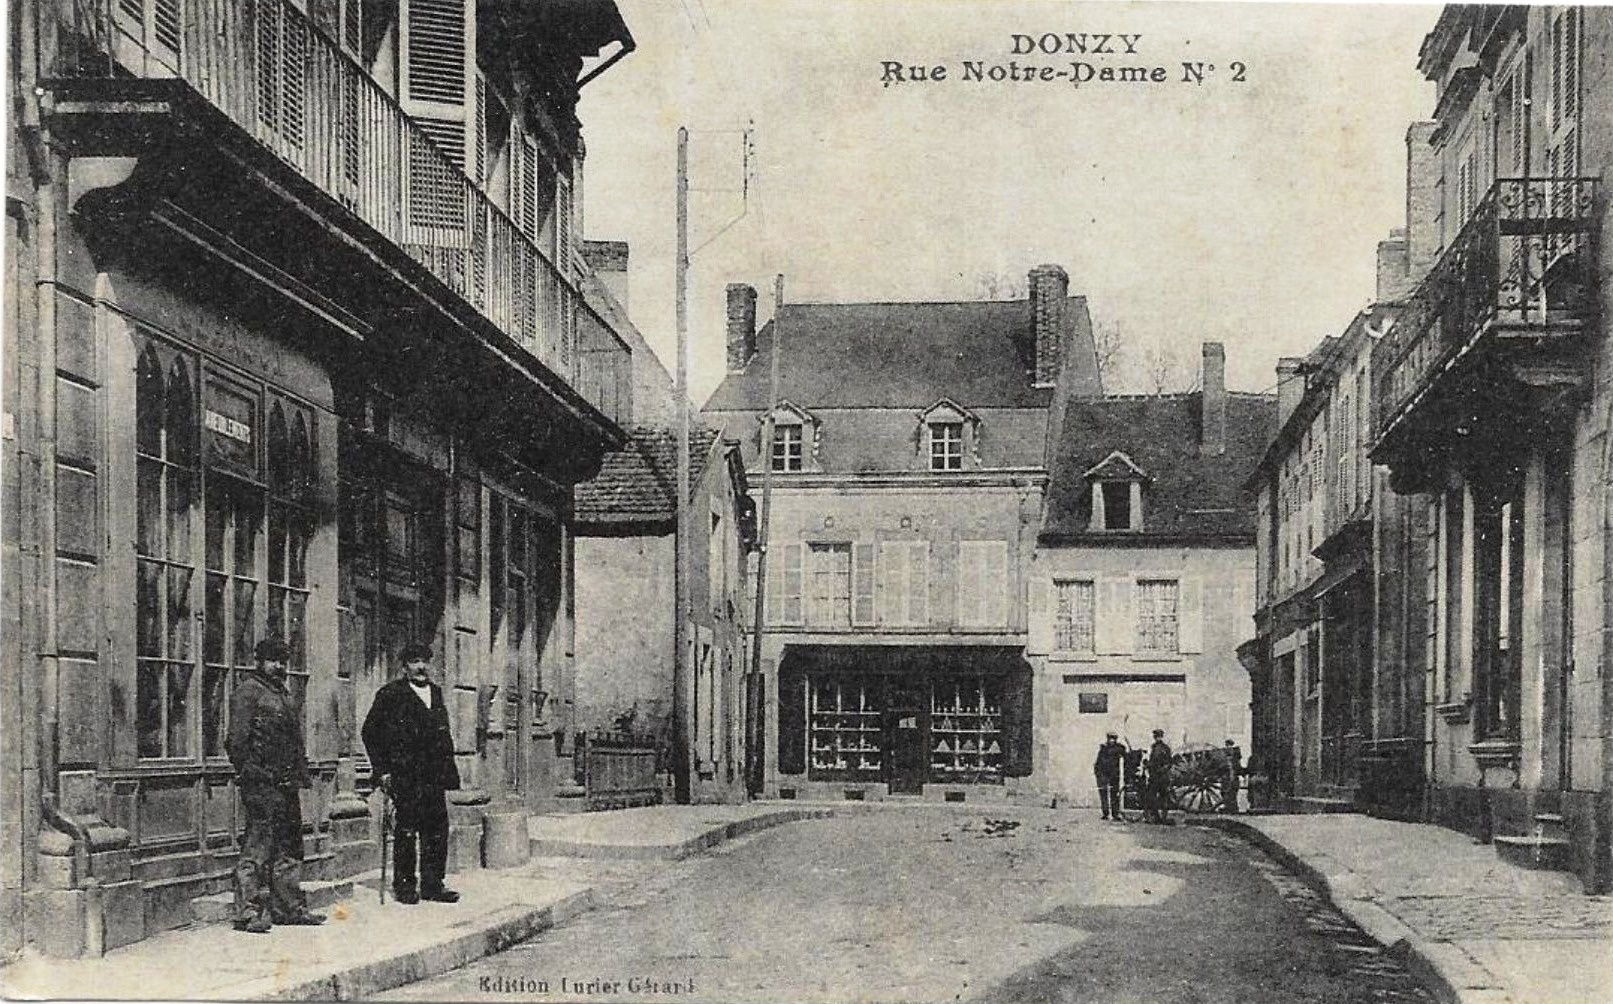 Donzy-rue-notre-dame-2